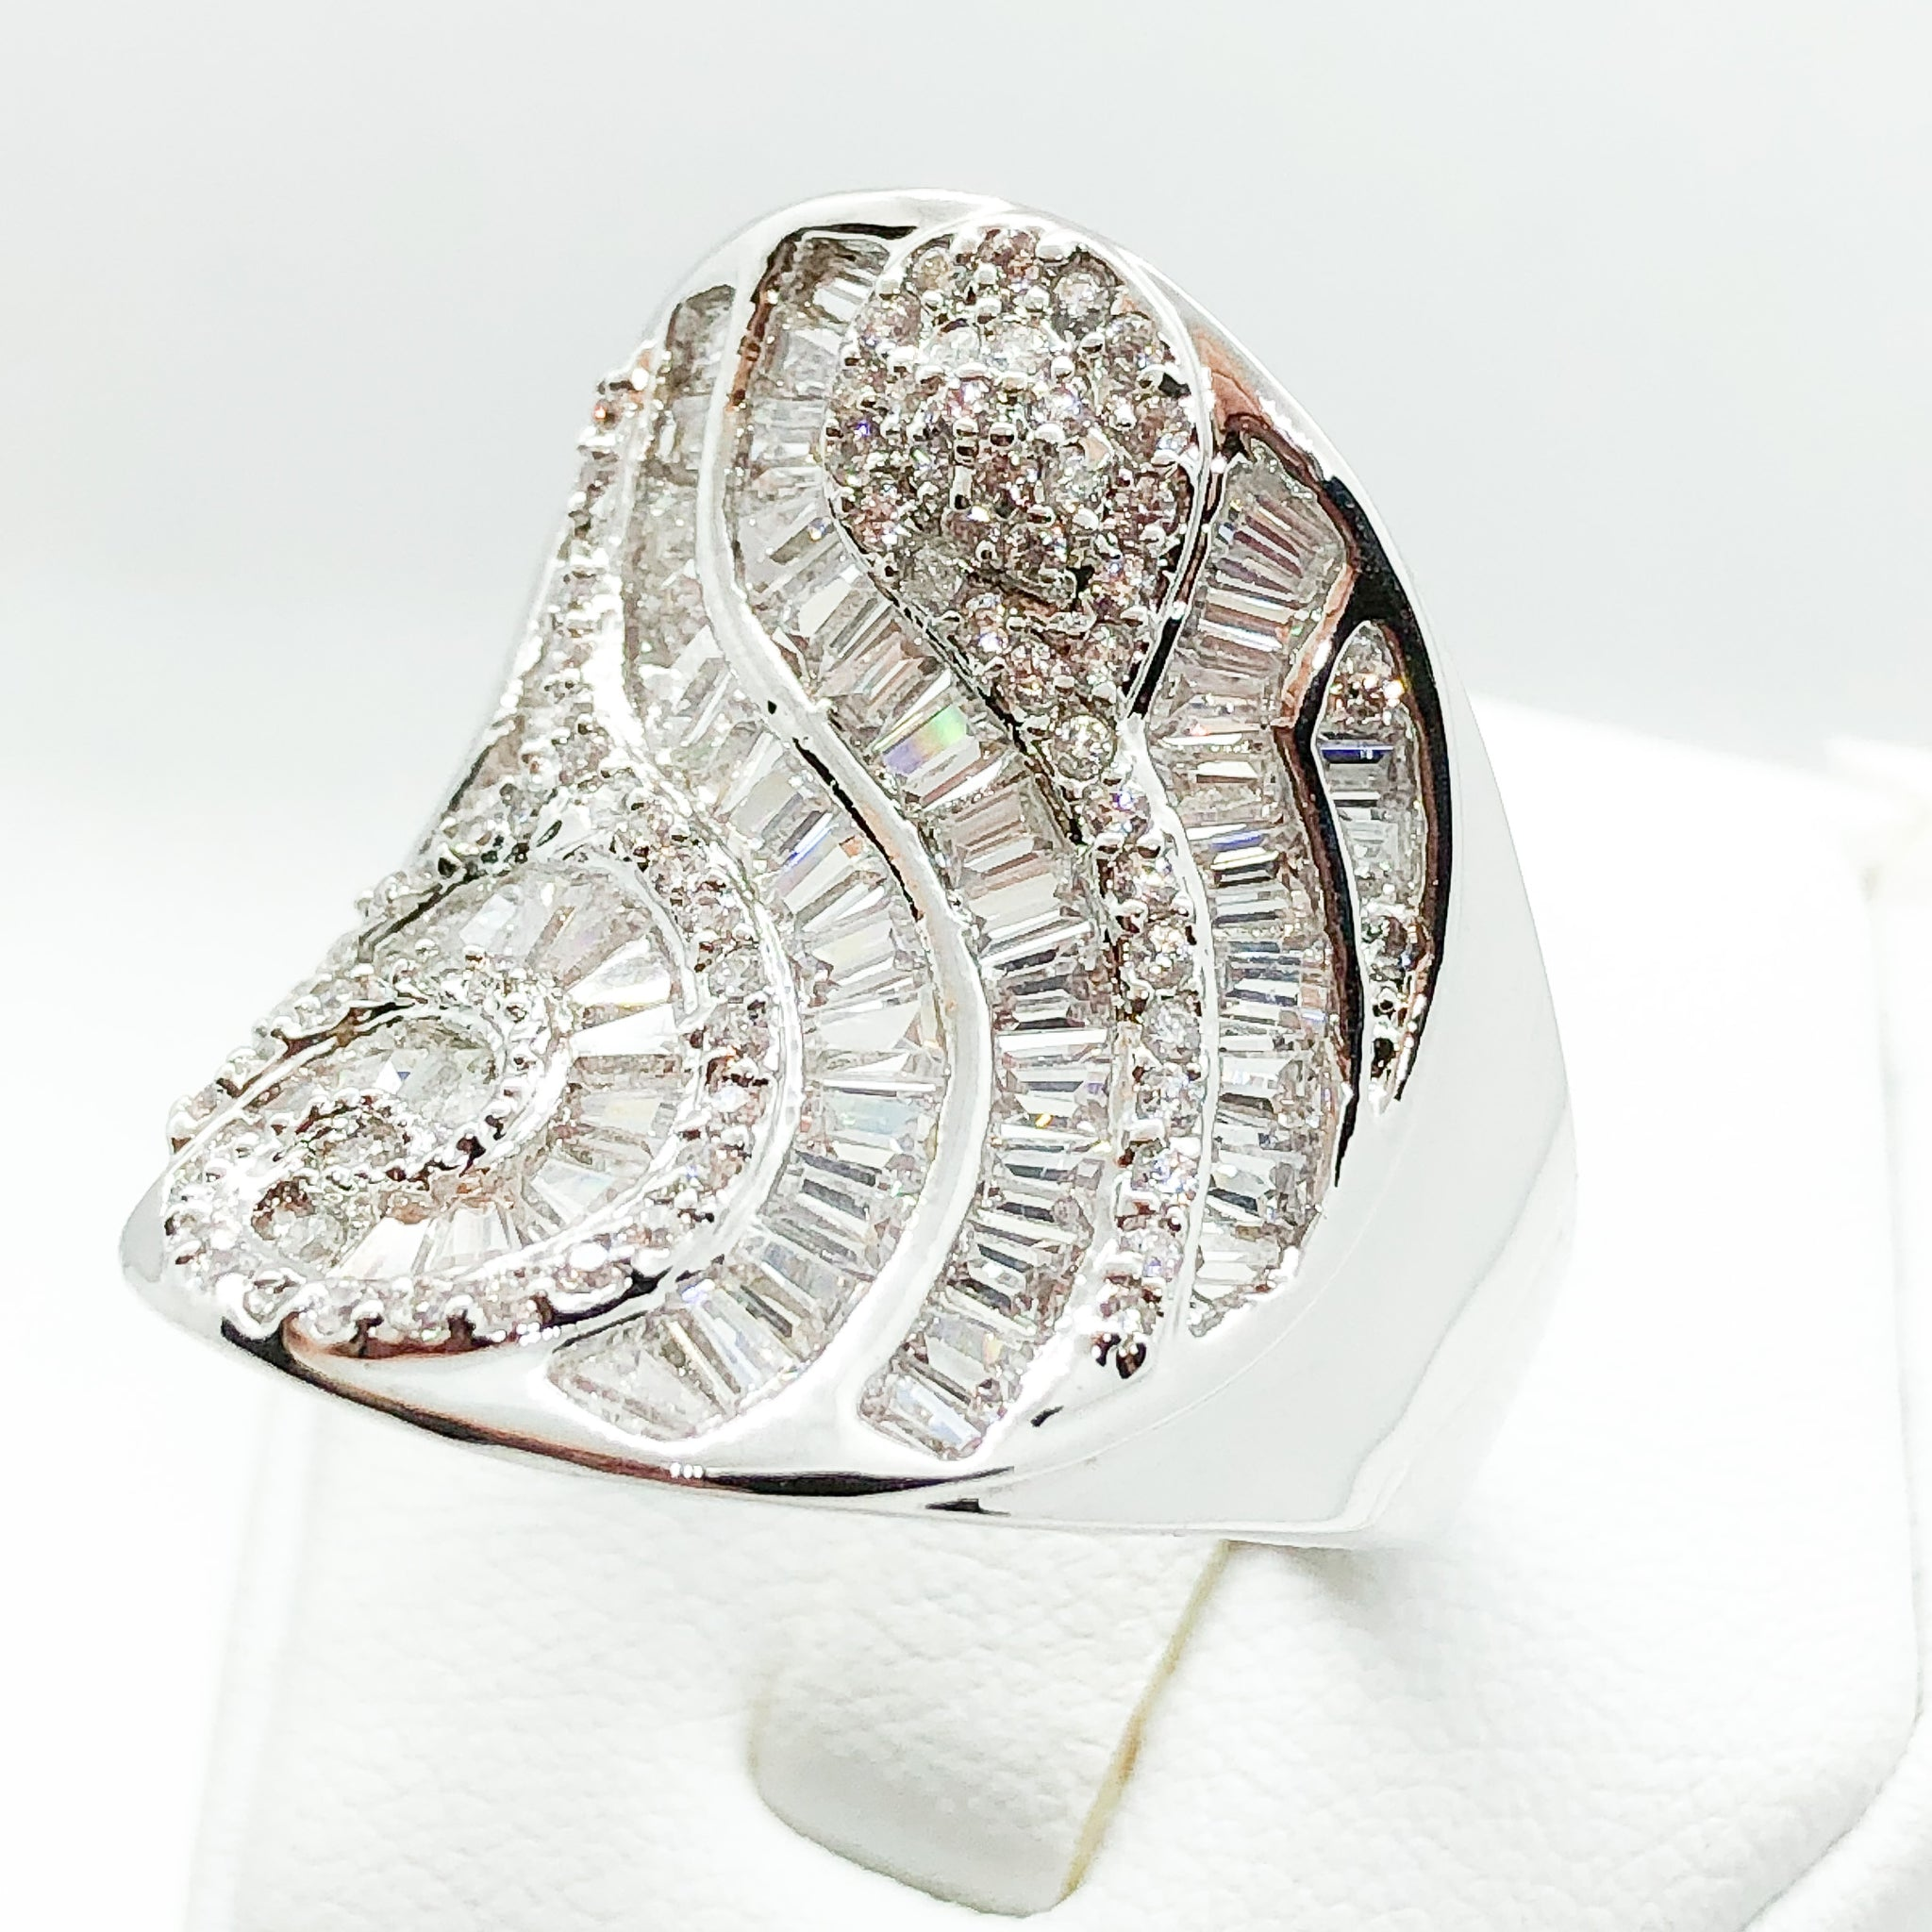 ID:R5006 Women 18K White Gold GF Fashion Jewelry Extraordinary Shining Unique Design Cocktail Ring Anniversary Gift